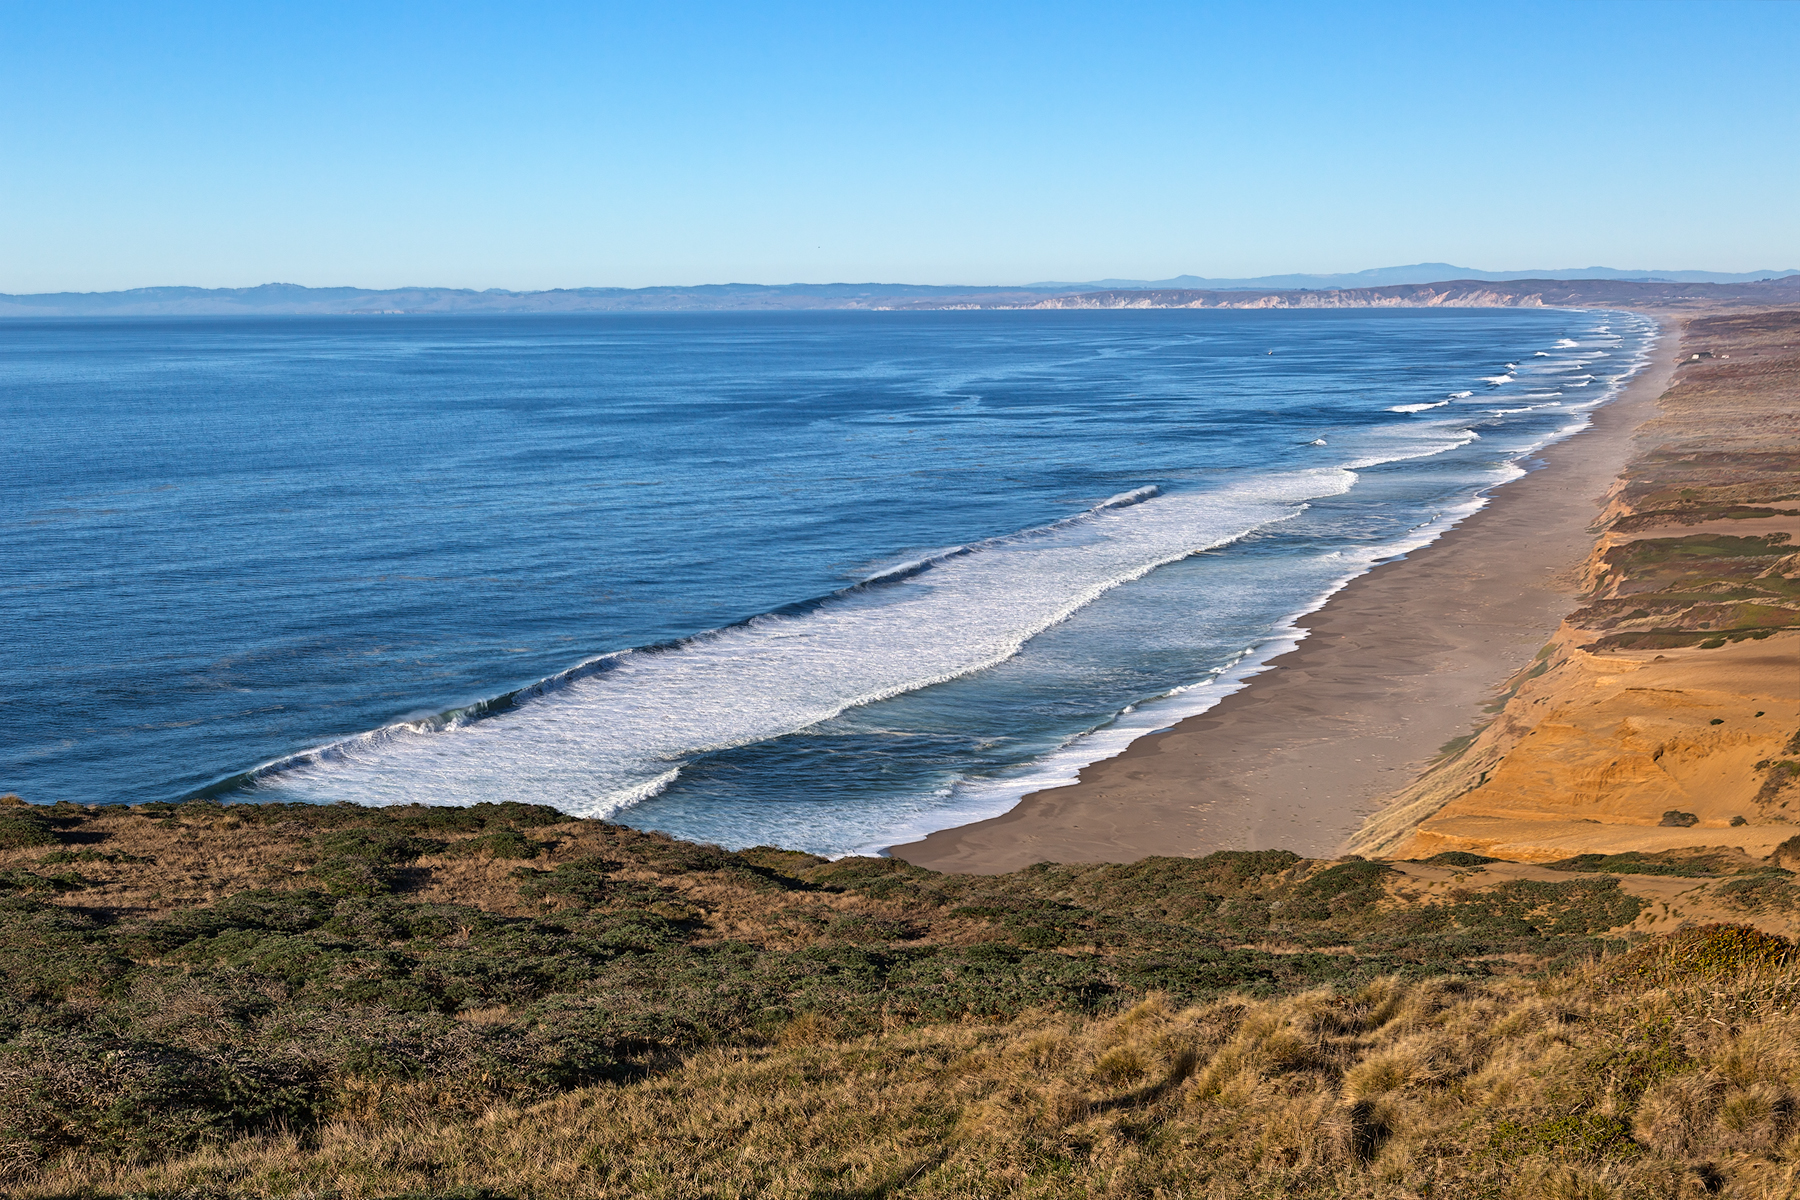 Point Reyes Coastal Scenery - HDR, America, Sandy, Shore, Seashore, HQ Photo